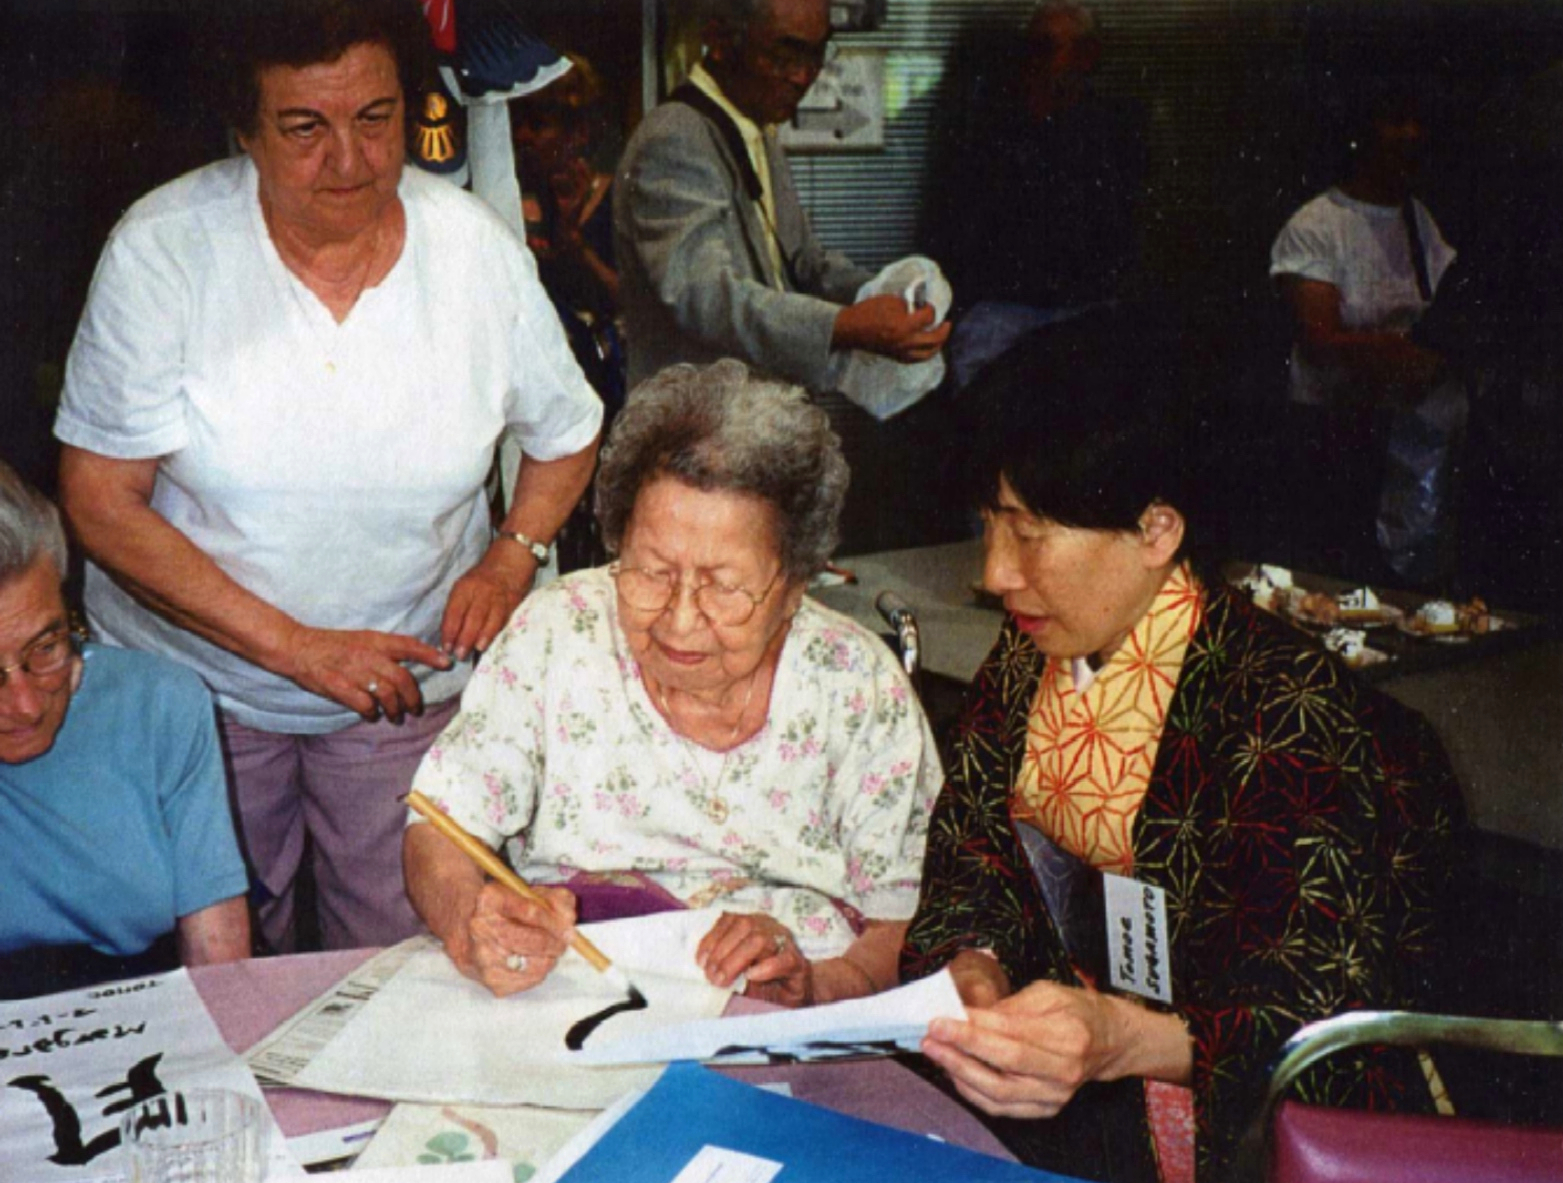 Image of Japanese guest teaching a Surrey resident calligraphy